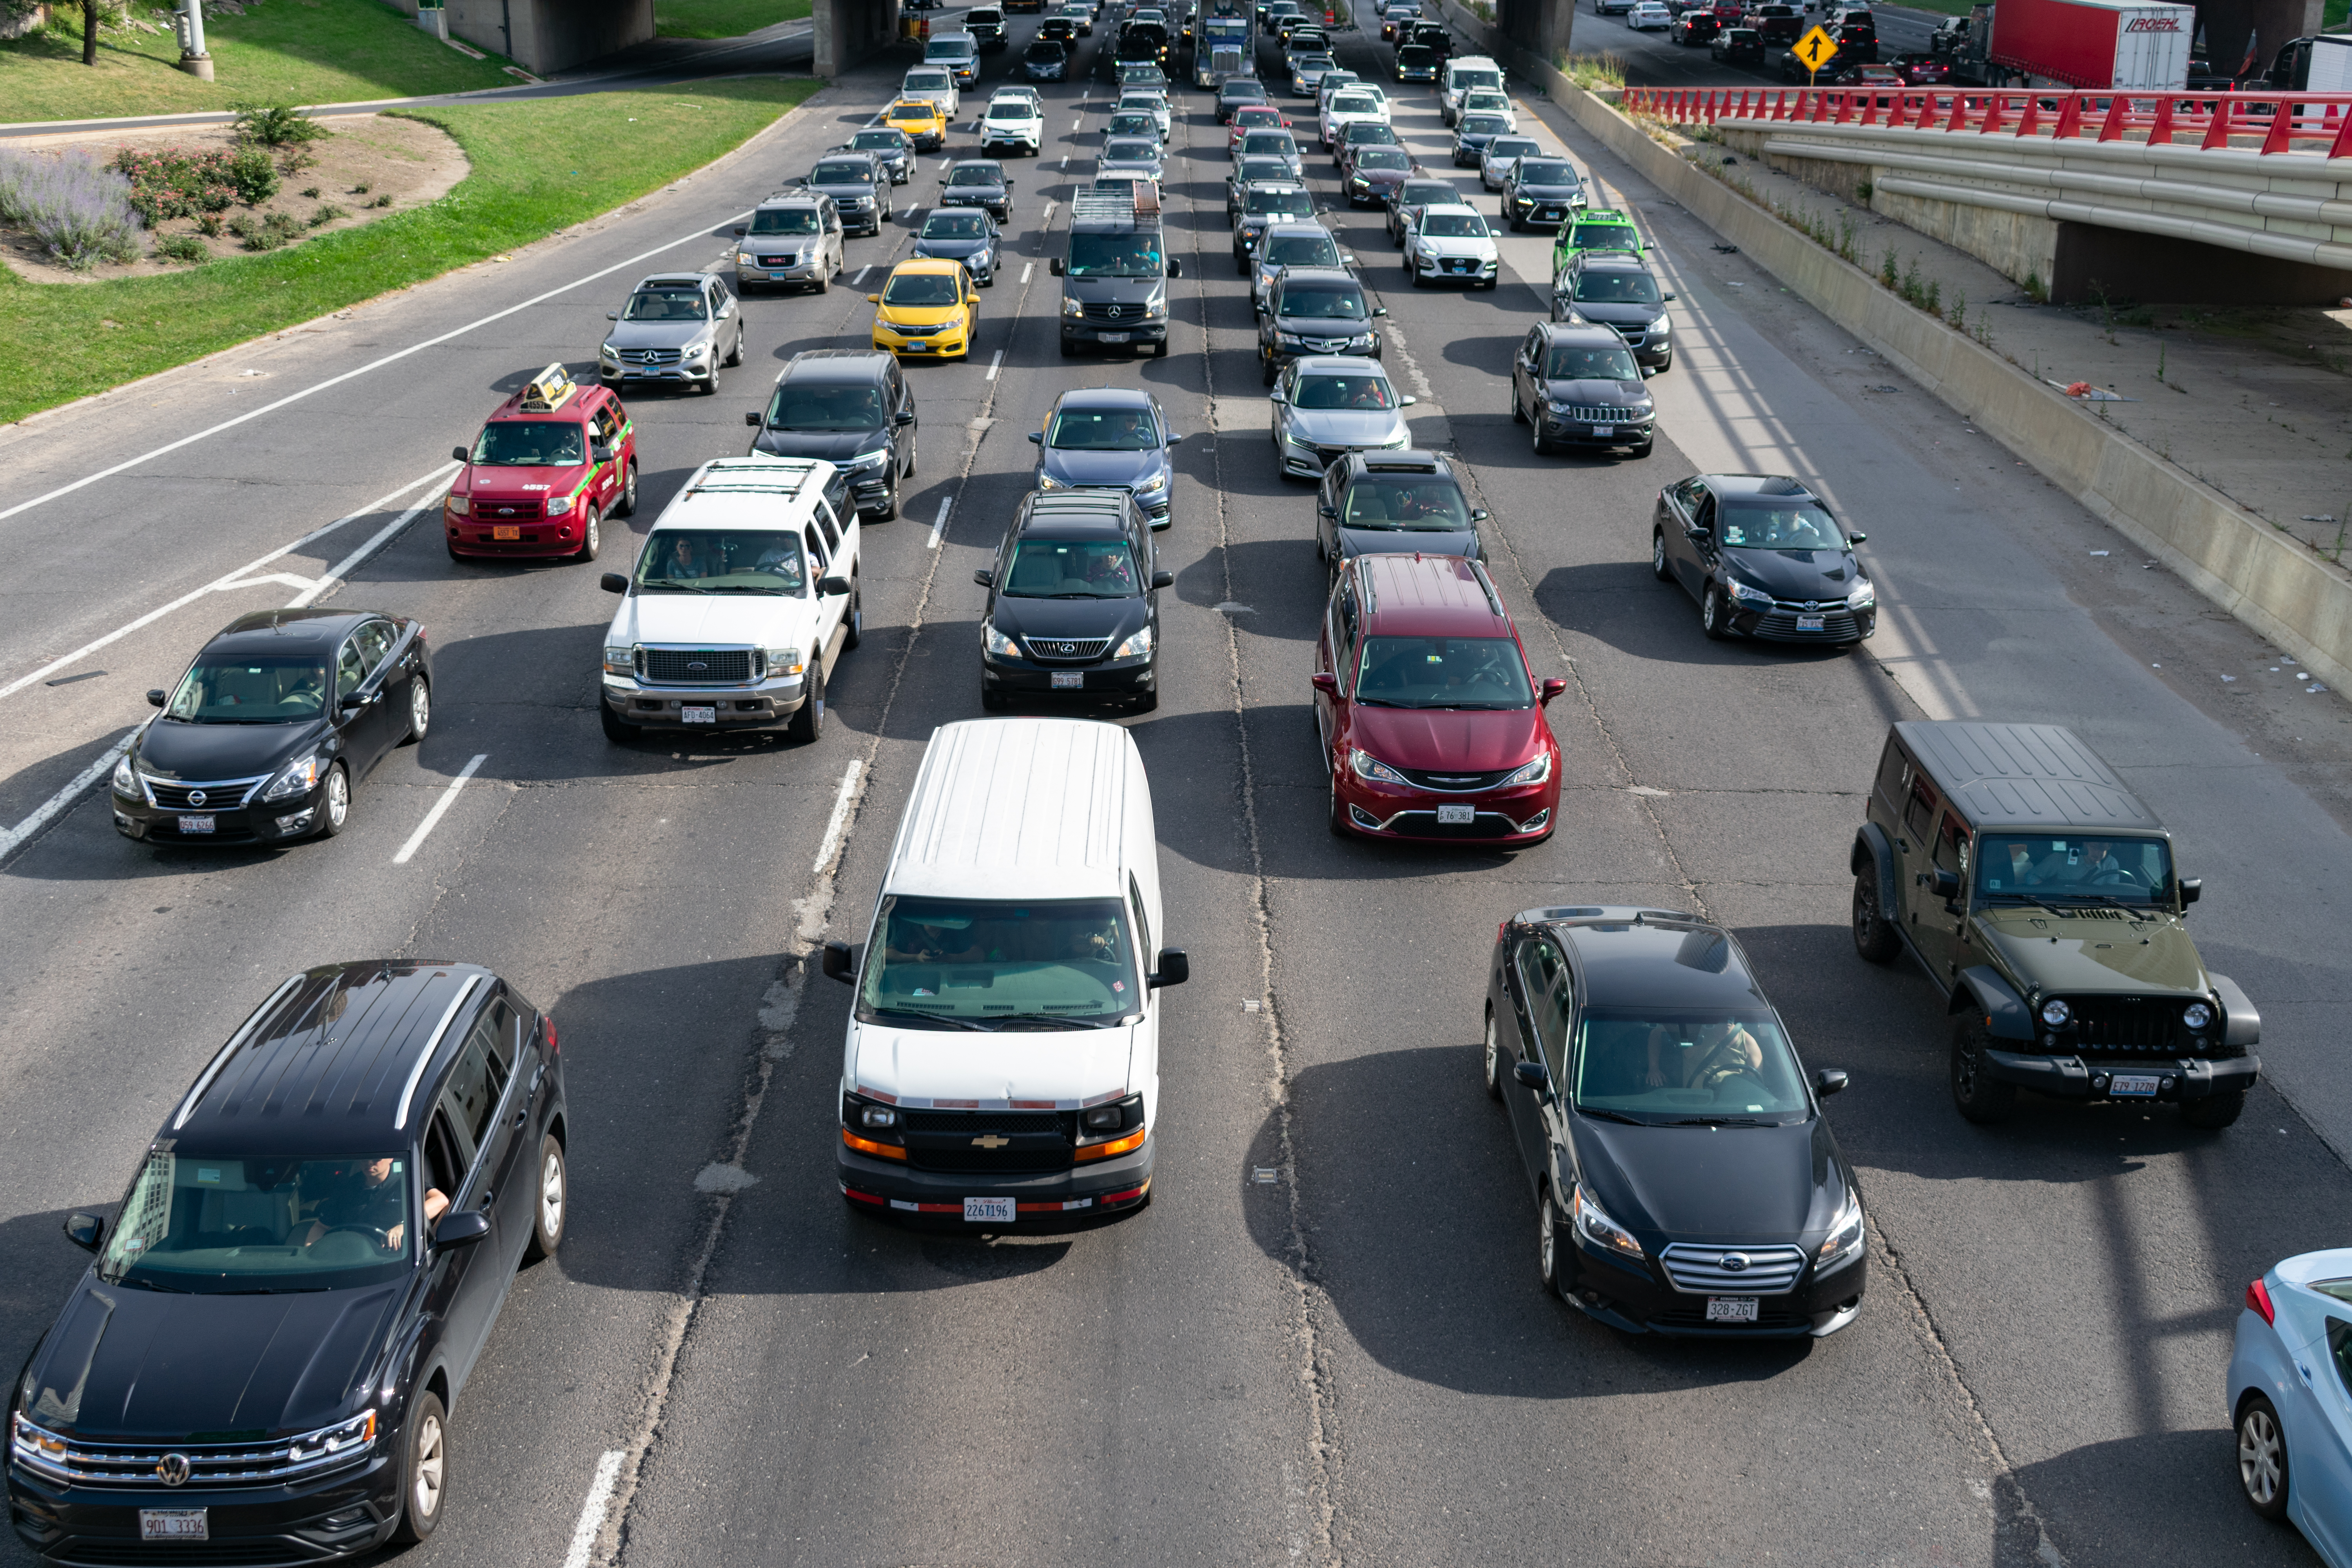 Cars travel on a five-lane expressway in Chicago on a sunny day.